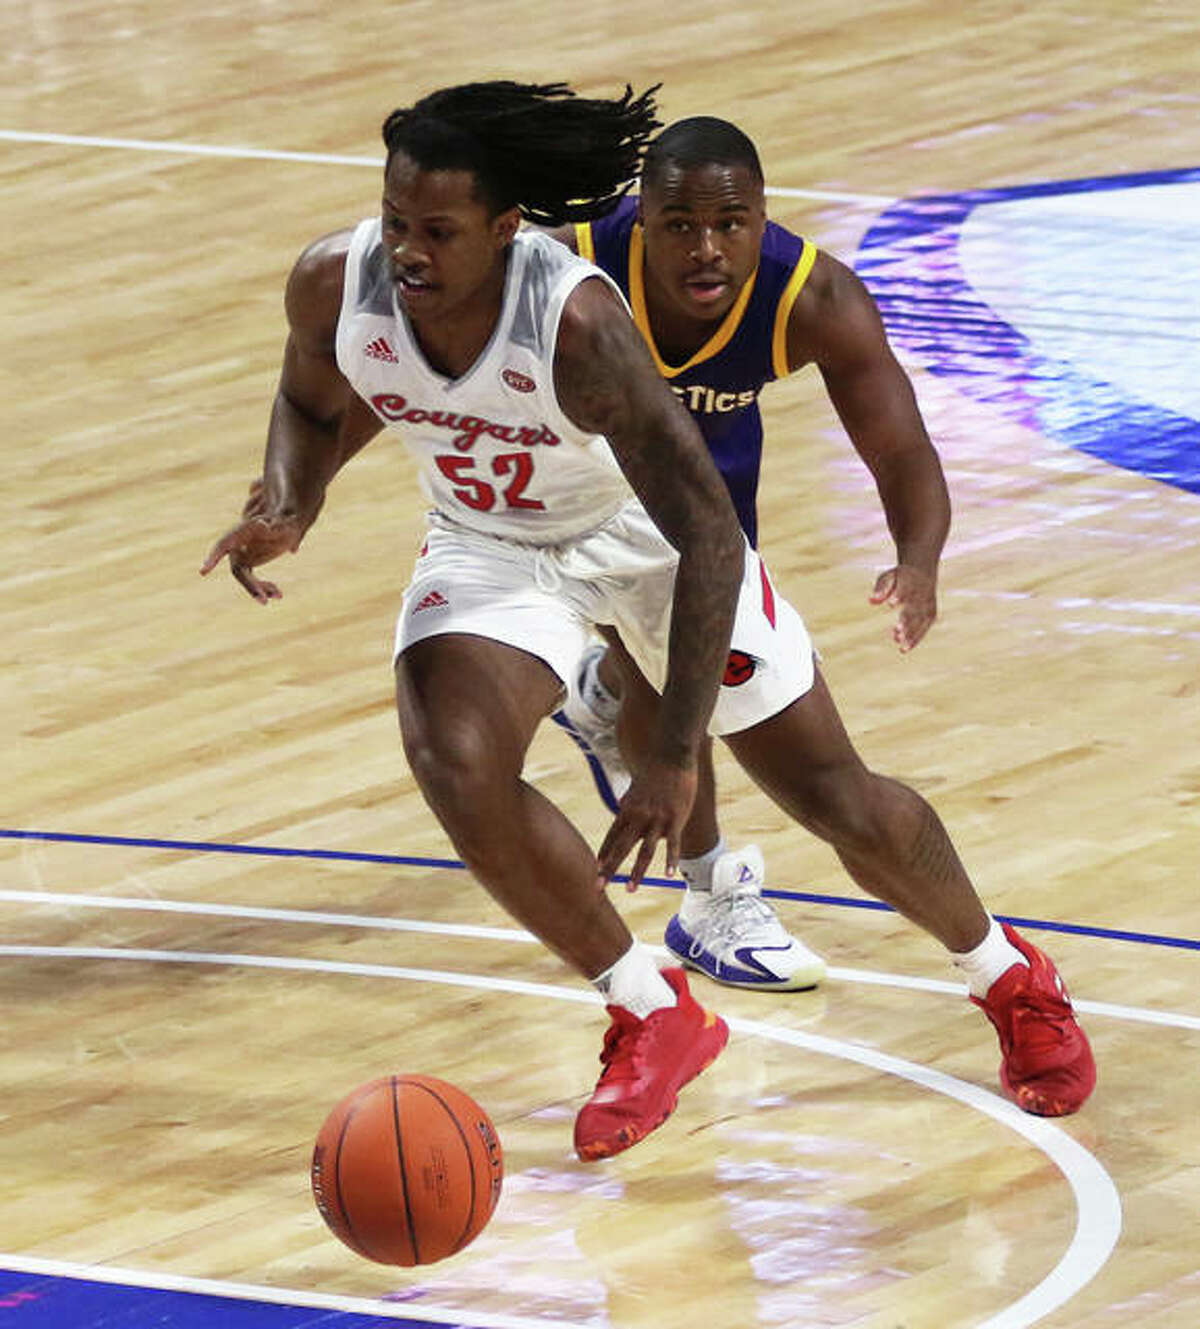 SIUE's Iziah James (52) drives the lane Saturday night against UHSP at Chaifetz Arena in St. Louis.